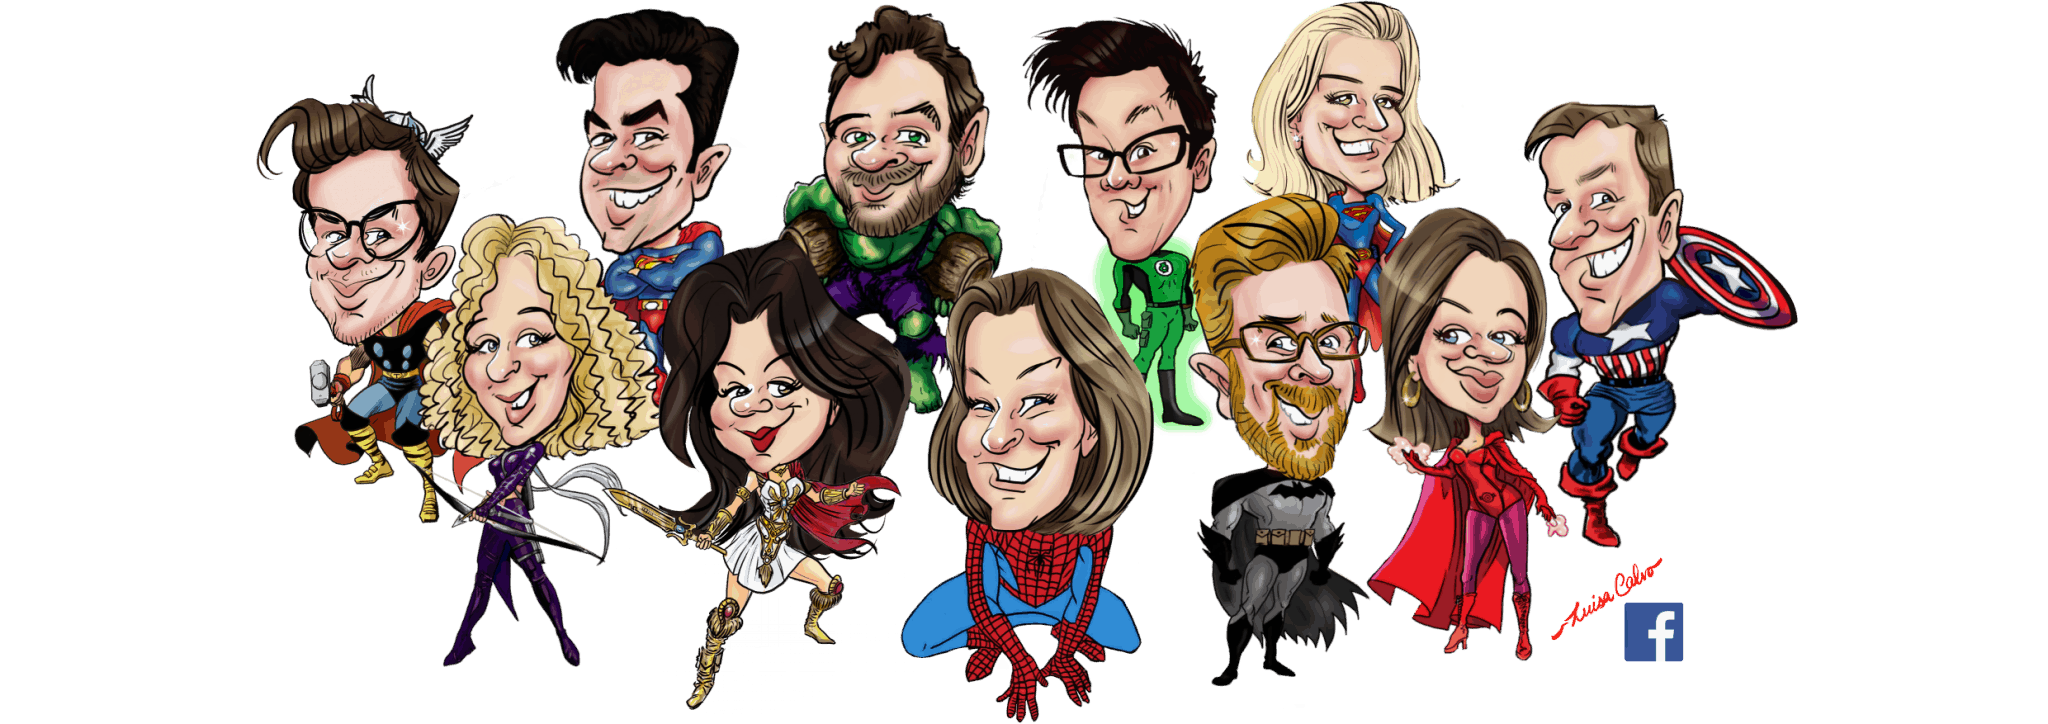 Group caricature by Luisa Calvo for facebook